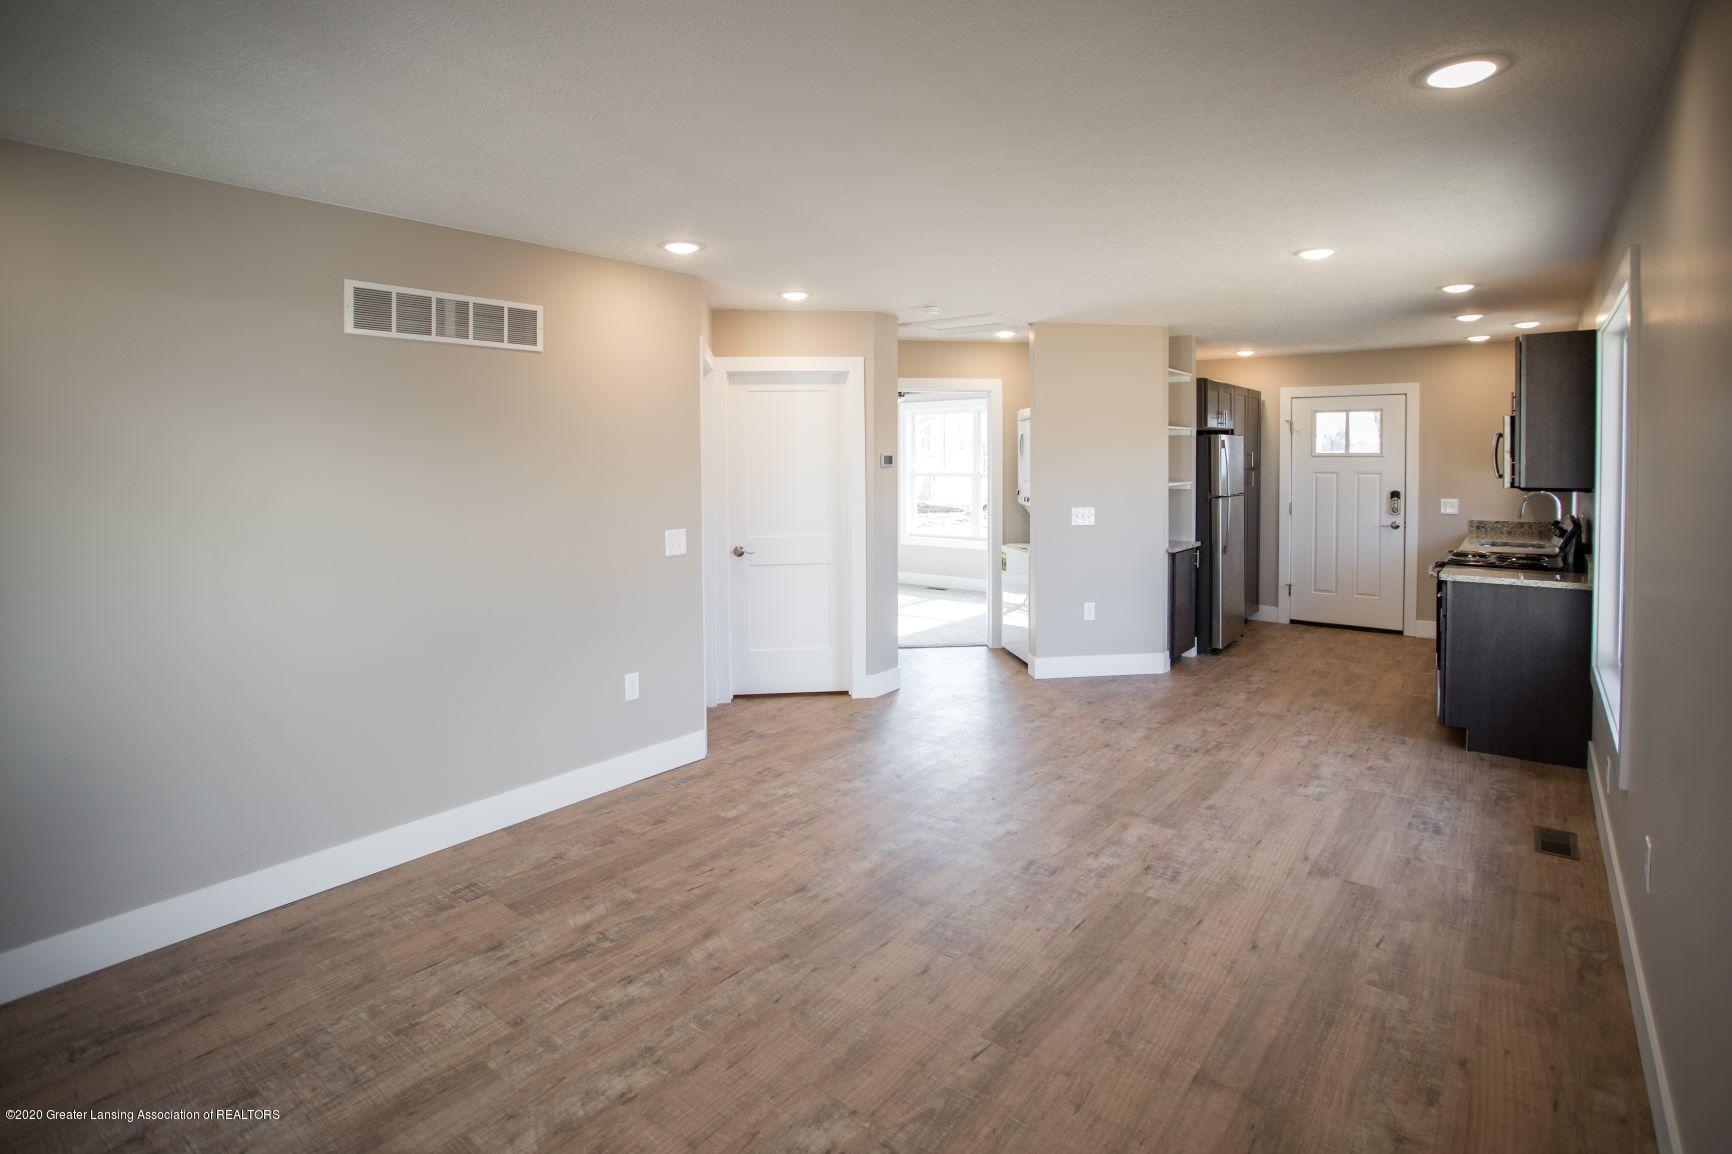 414 Haven St 2 - GB3A7950200313035710016 - 10